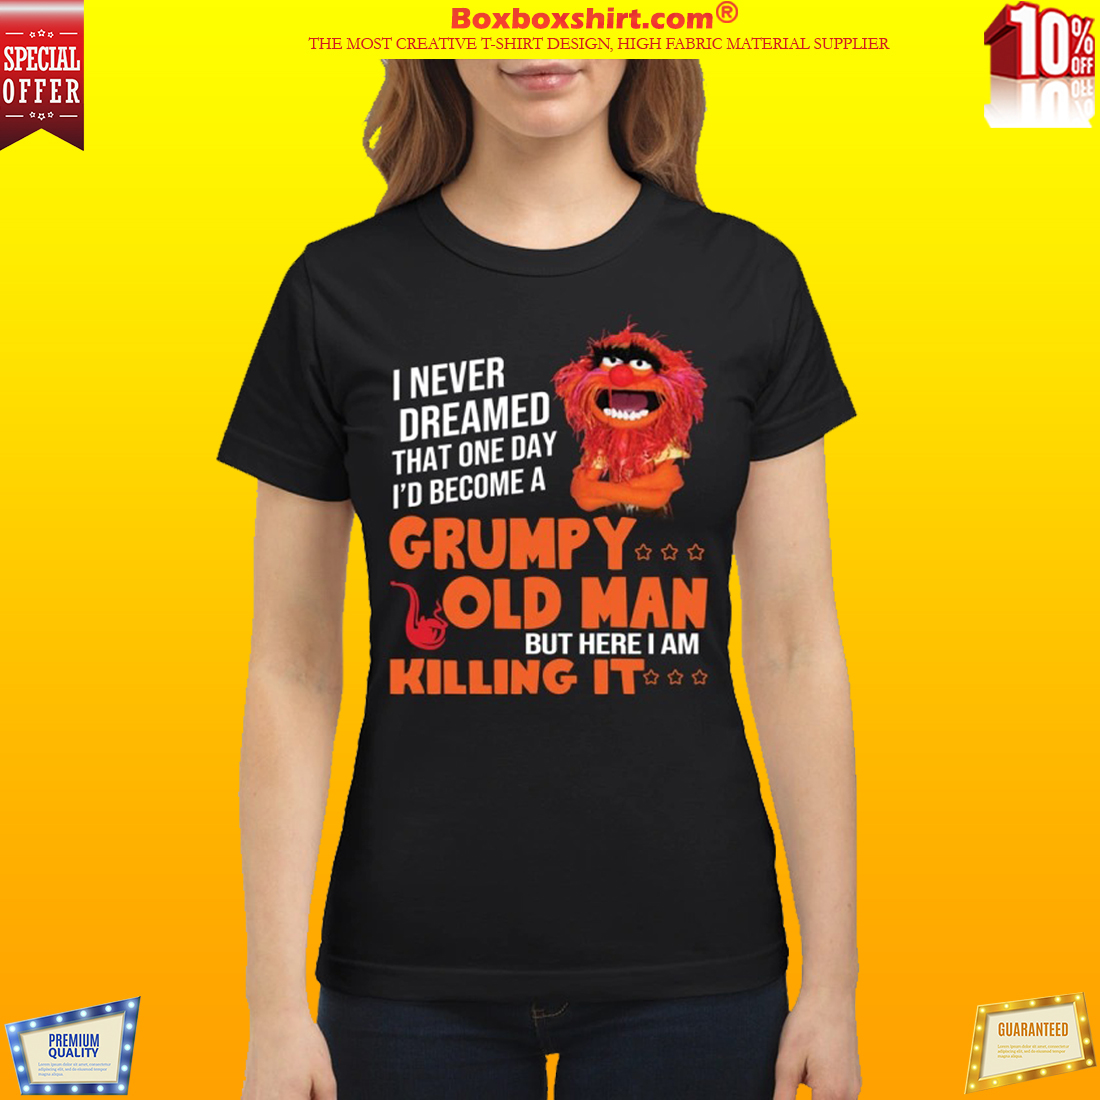 I never dream become Grumpy old man killing it shirt and classic shirt